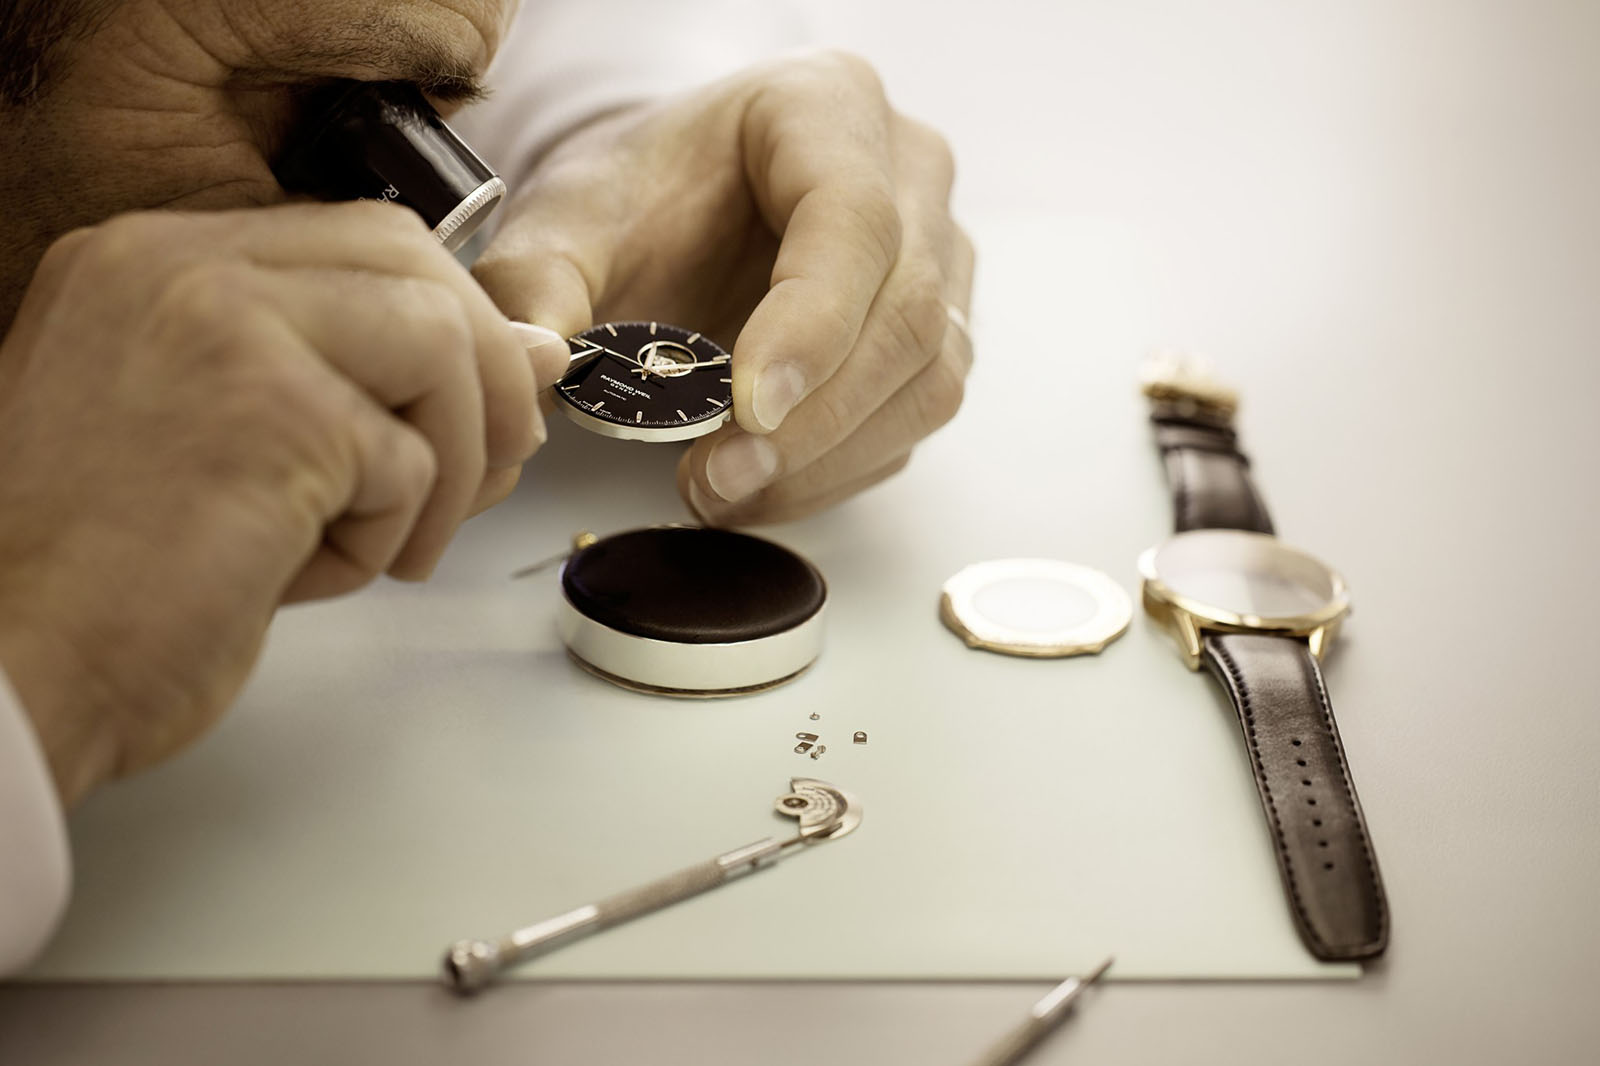 Raymond Weil, Watch Service Finland ja Kelloharrastajat esittävät: Experience the Art of Watchmaking